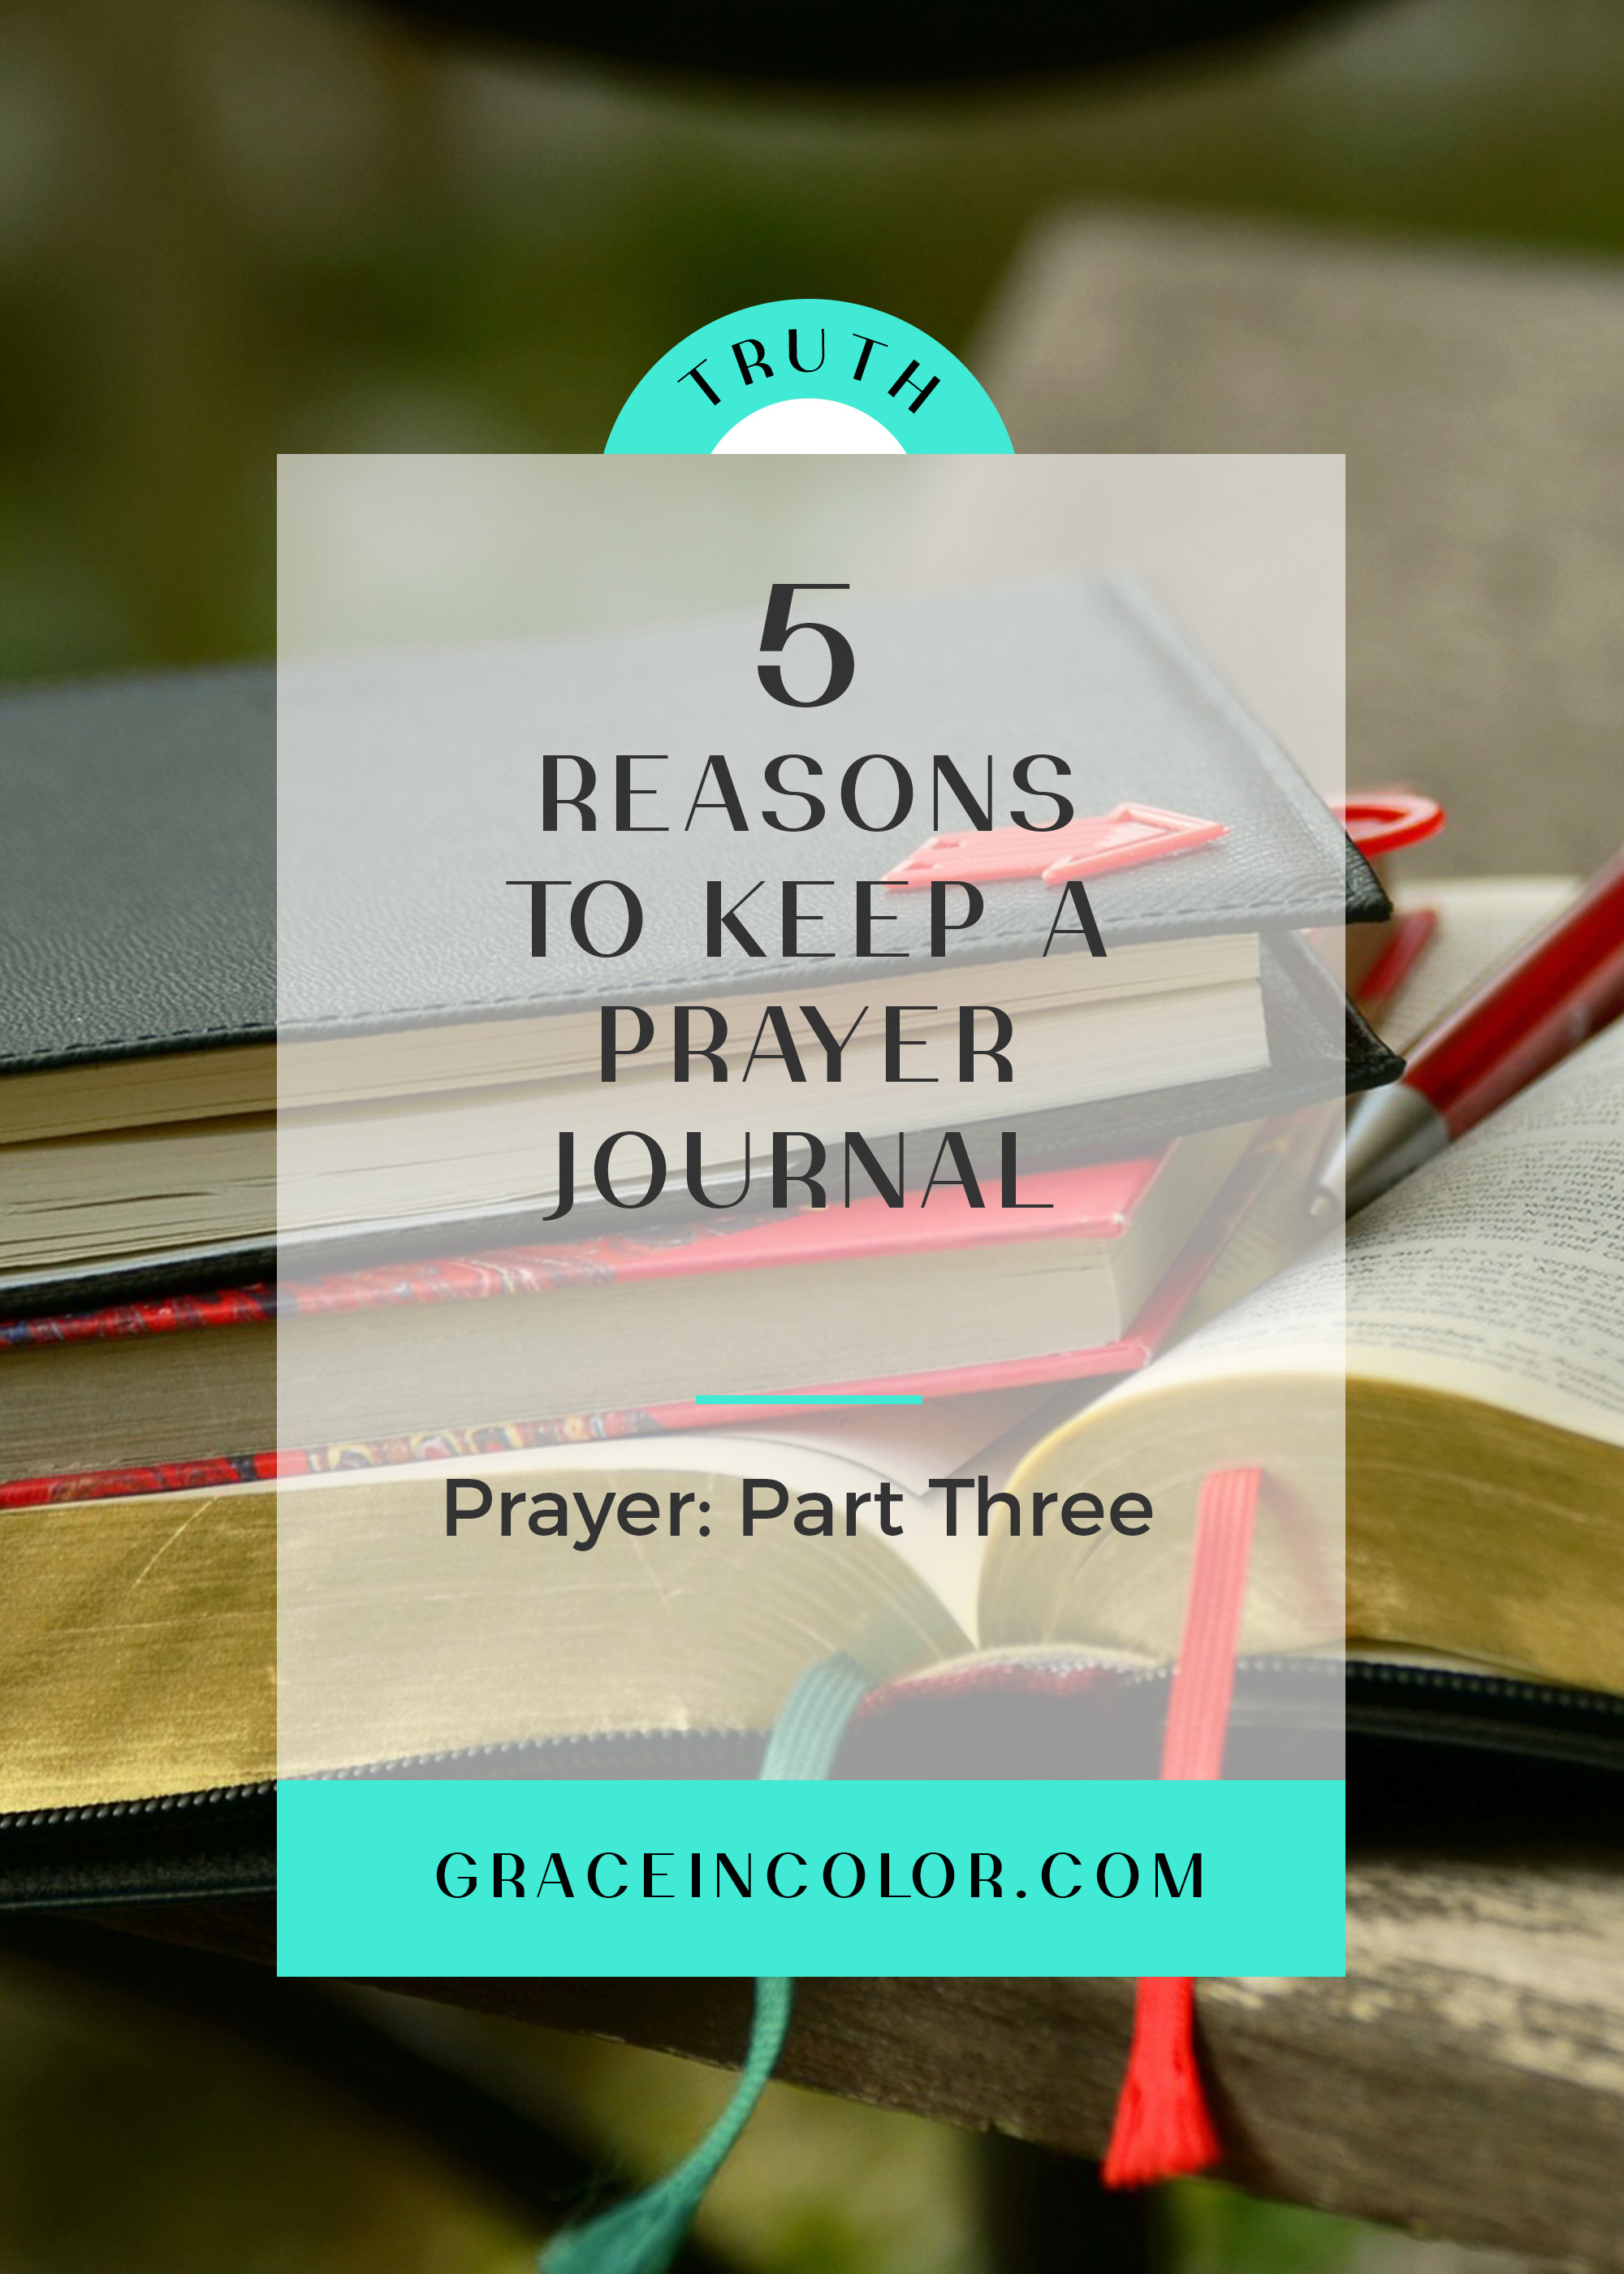 5 Reasons to Keep a Prayer Journal